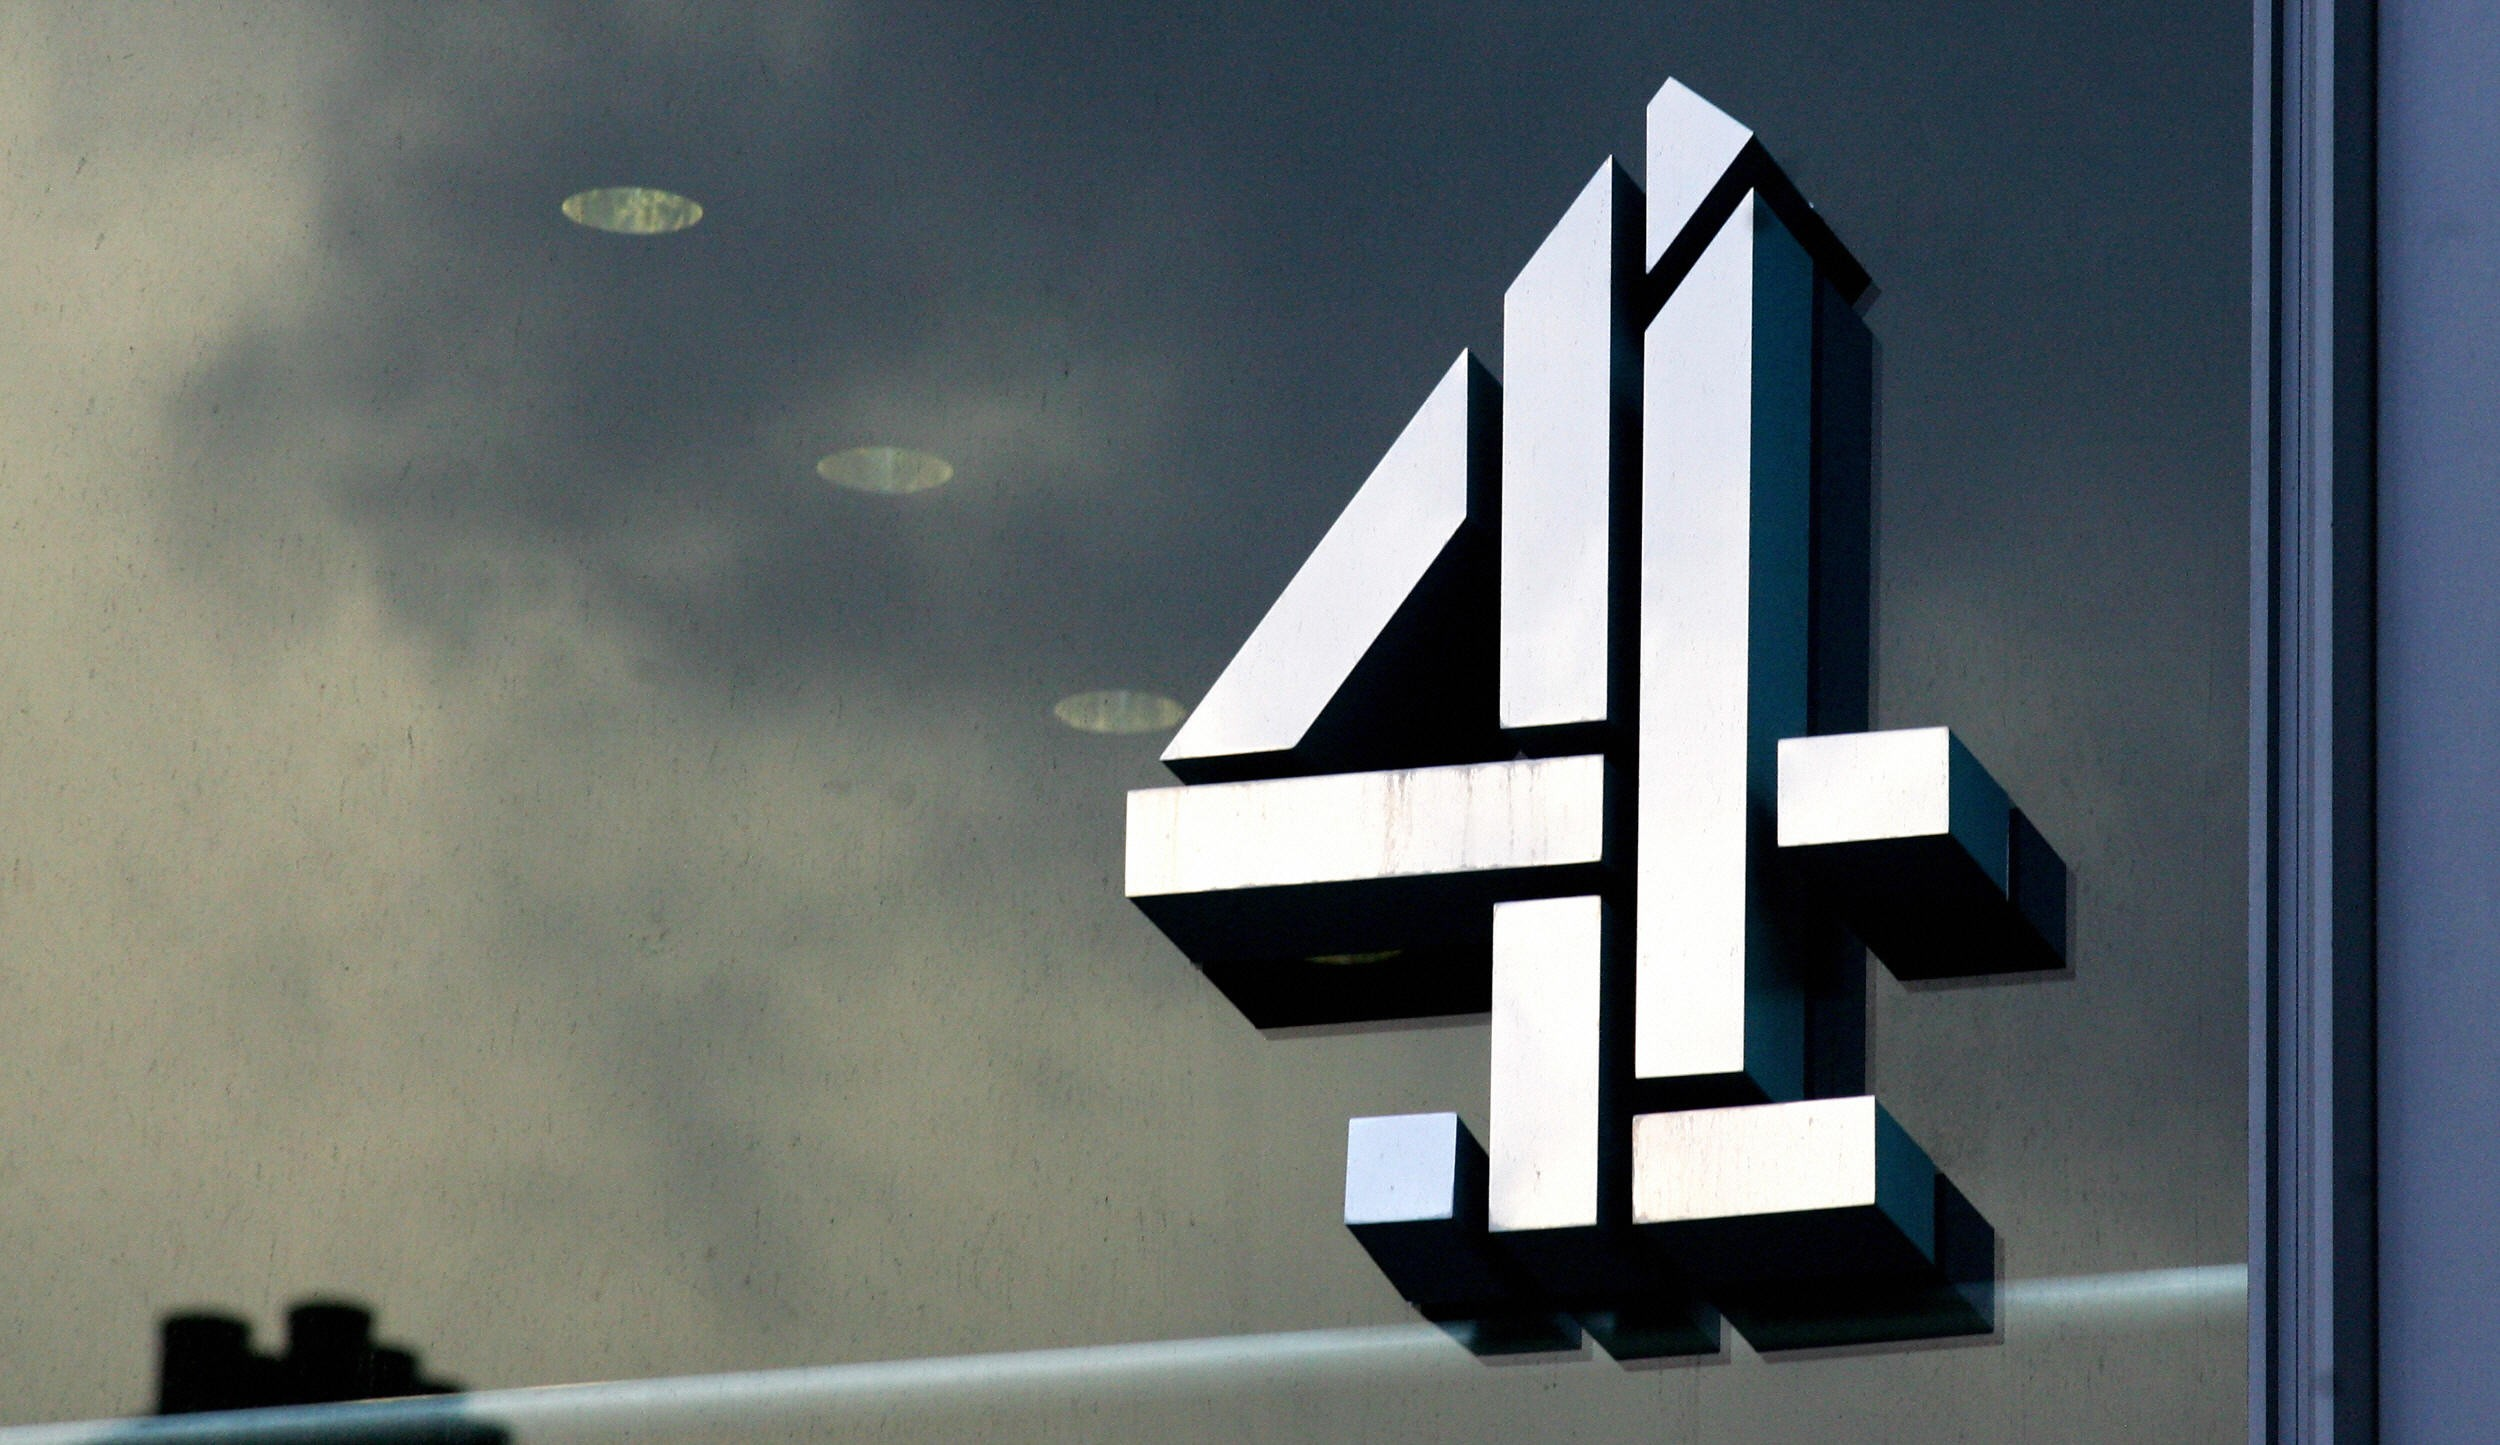 "London, UNITED KINGDOM:  The logo of Britain's Channel 4 television station is pictured at the company's headquarters in central London, 18 January 2007. Carphone Warehouse, the main backer of Channel 4's reality television show 'Celebrity Big Brother,' pulled its support Thursday as complaints about alleged racist bullying spiralled and criticism mounted. Mobile communications retailer the Carphone Warehouse said it had told broadcaster Channel 4 to remove its name and branding from the programme with immediate effect, saying it did not want to be associated with it.  But Channel 4 chief executive Andy Duncan said Thursday they ""could not say with certainty"" that the comments directed at 31-year-old Bollywood actress Shilpa Shetty were racist or whether they stemmed from ""broader cultural or social differences"". And he rejected calls for the show to be pulled off air. AFP PHOTO/CARL DE SOUZA  (Photo credit should read CARL DE SOUZA/AFP/Getty Images)  Getty, TL"